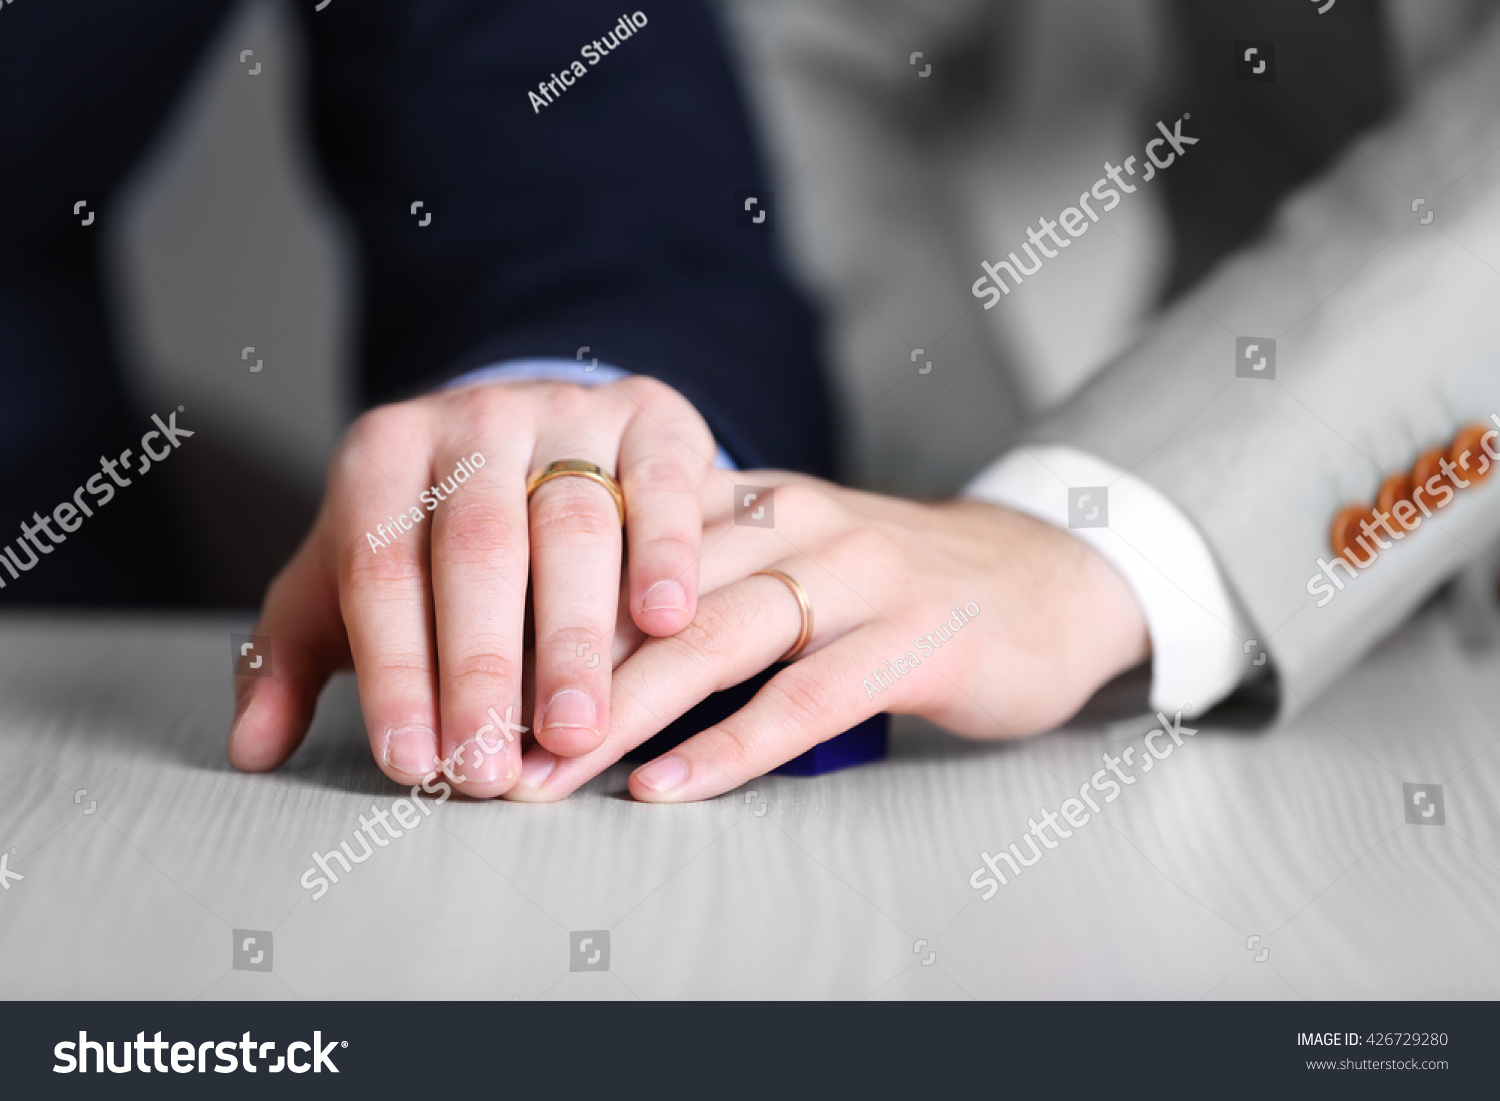 picture of man and woman with wedding ring | EZ Canvas